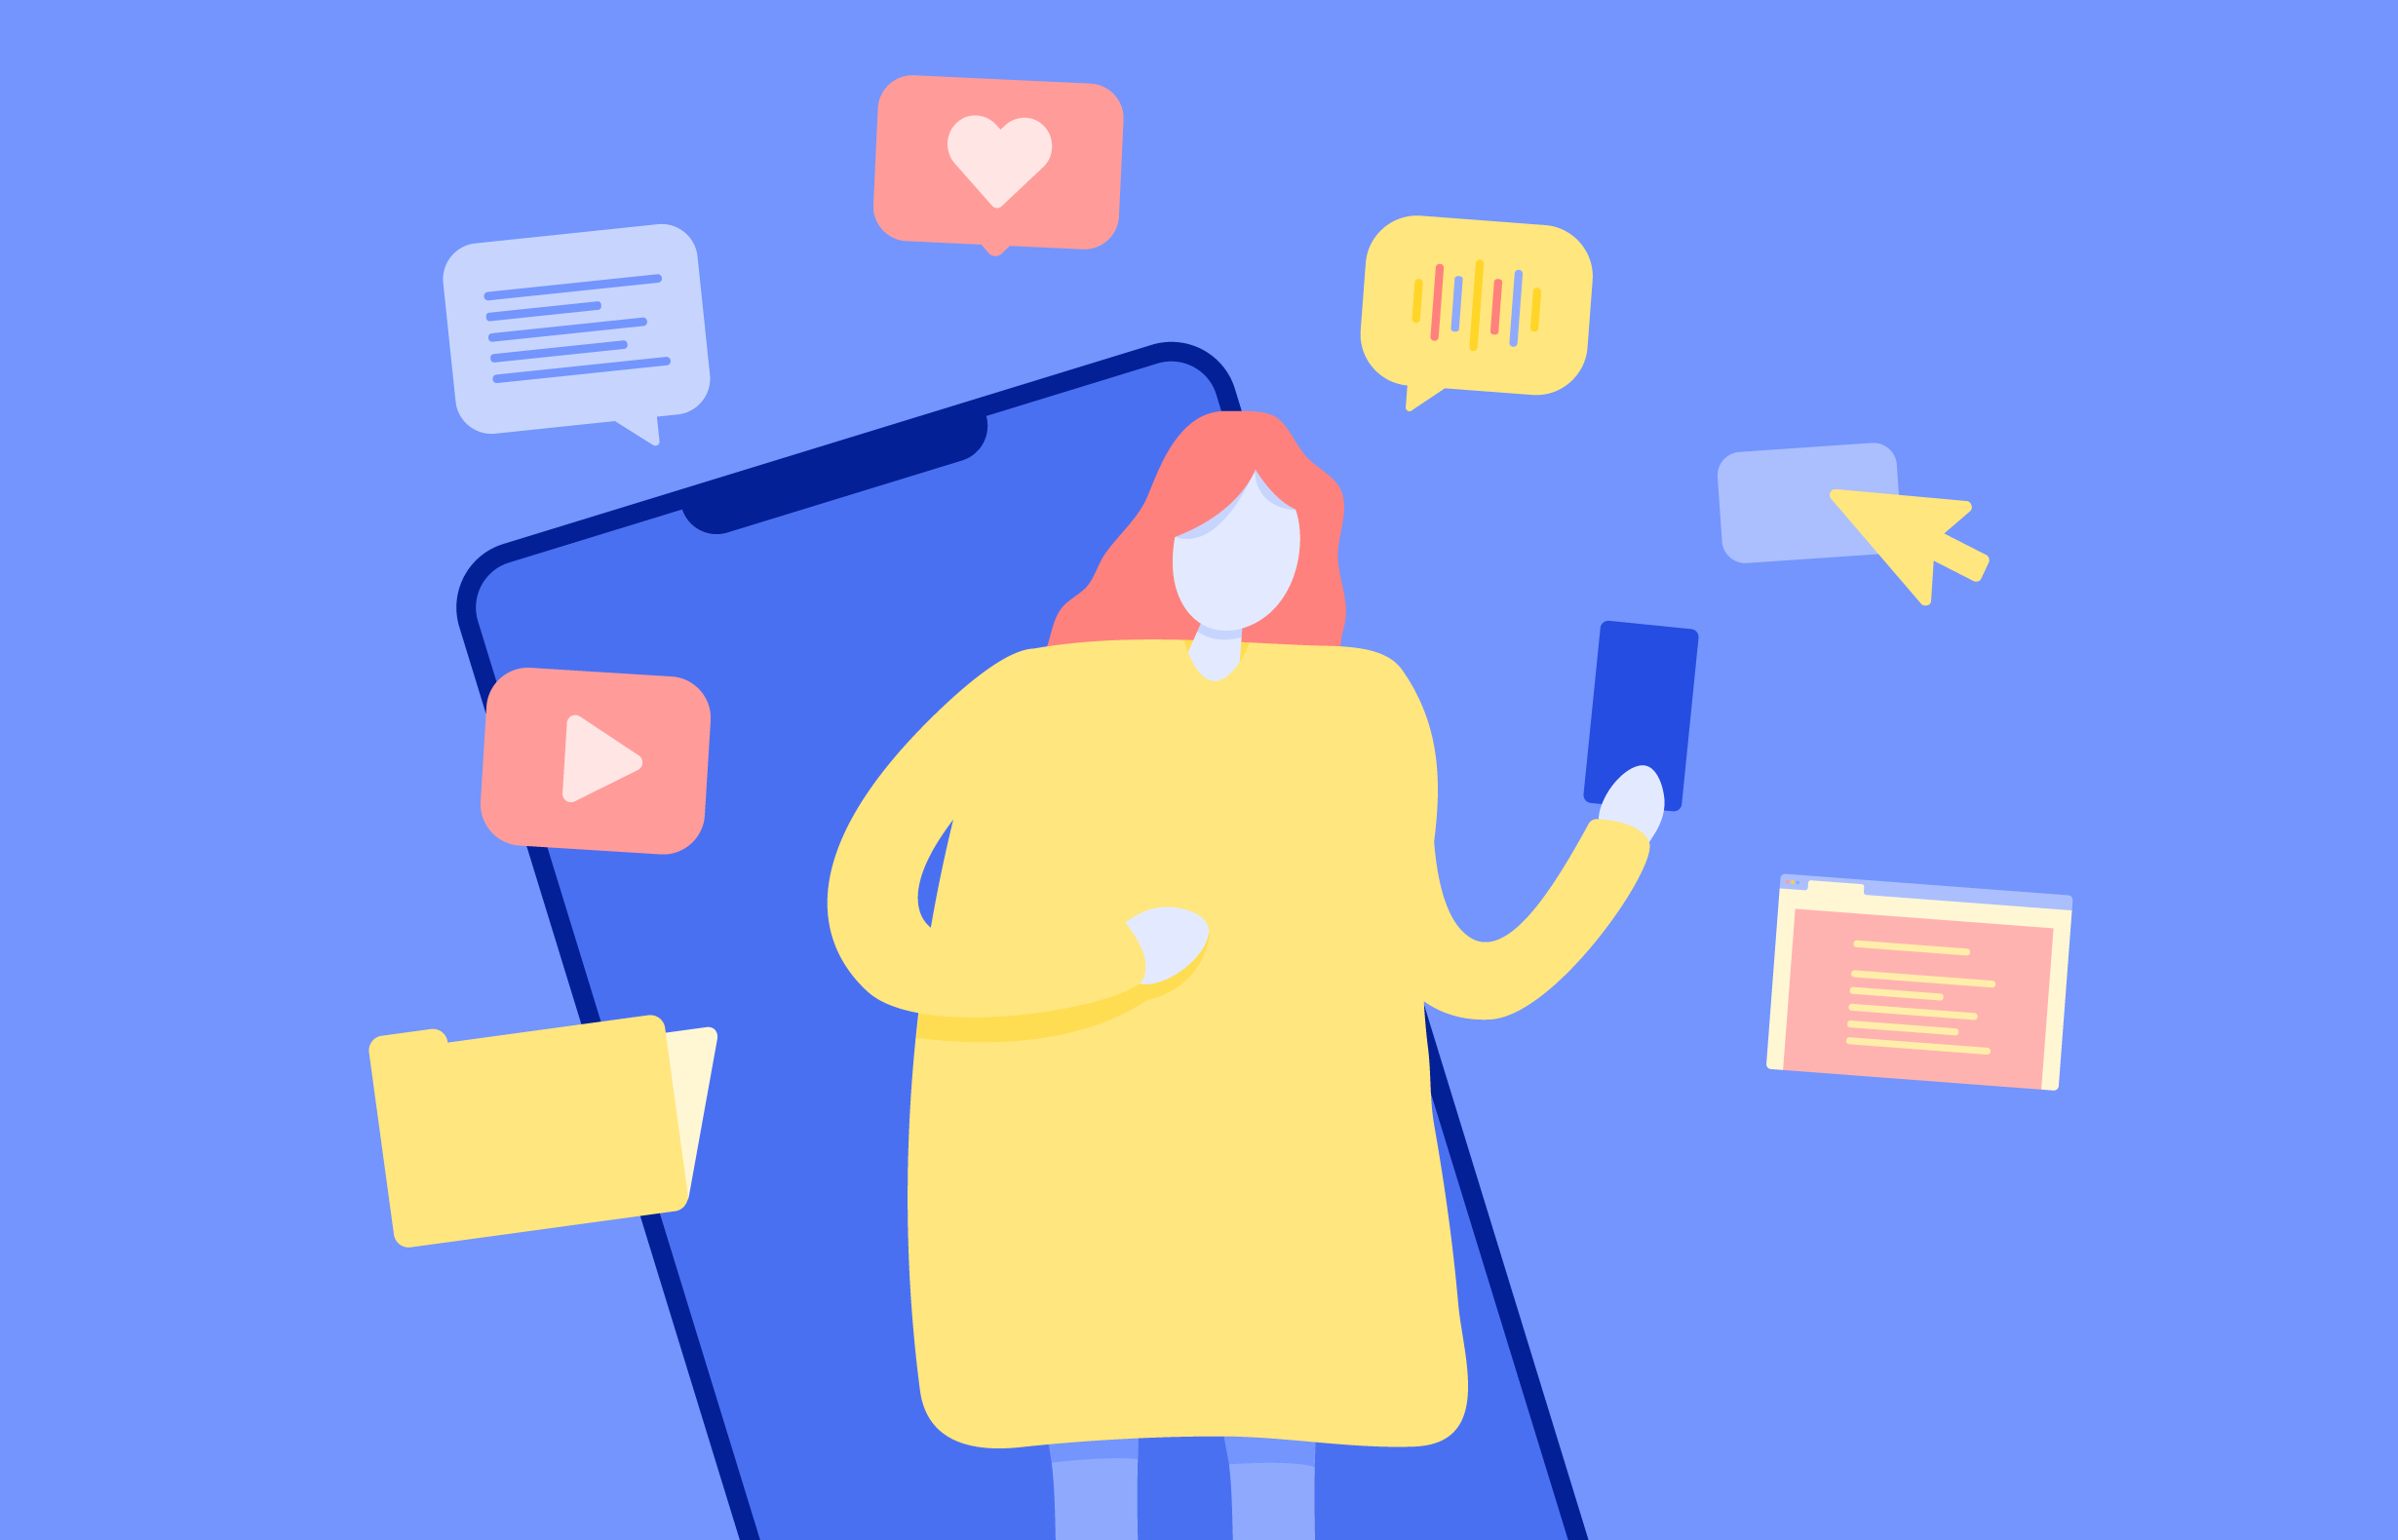 The 4 things you need to know about developing training content for generation Z